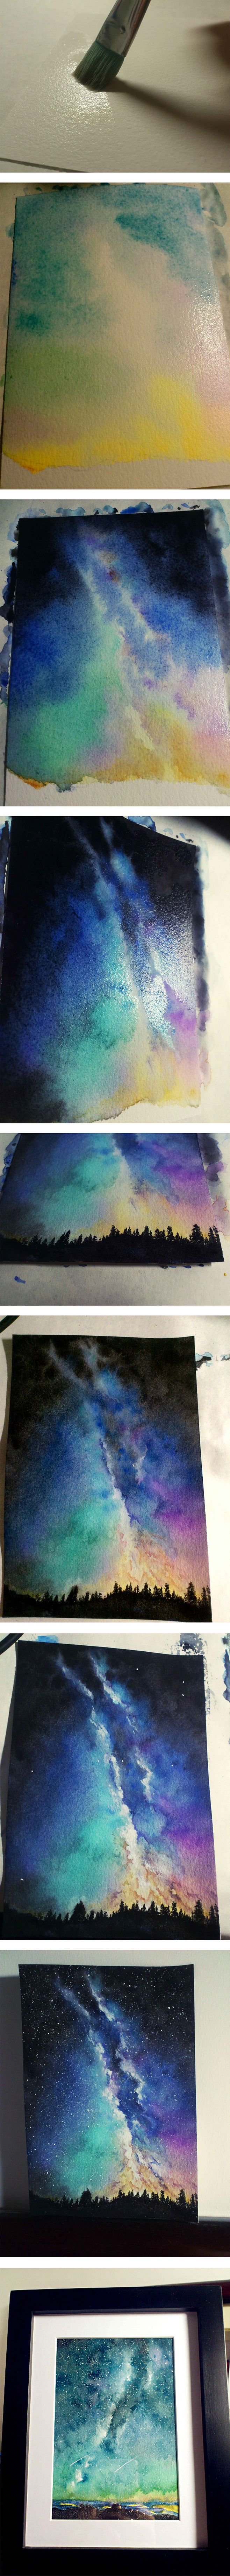 Watercolor sky Tutorial could also be used with tree rubber stamps instead of painting the landscape.